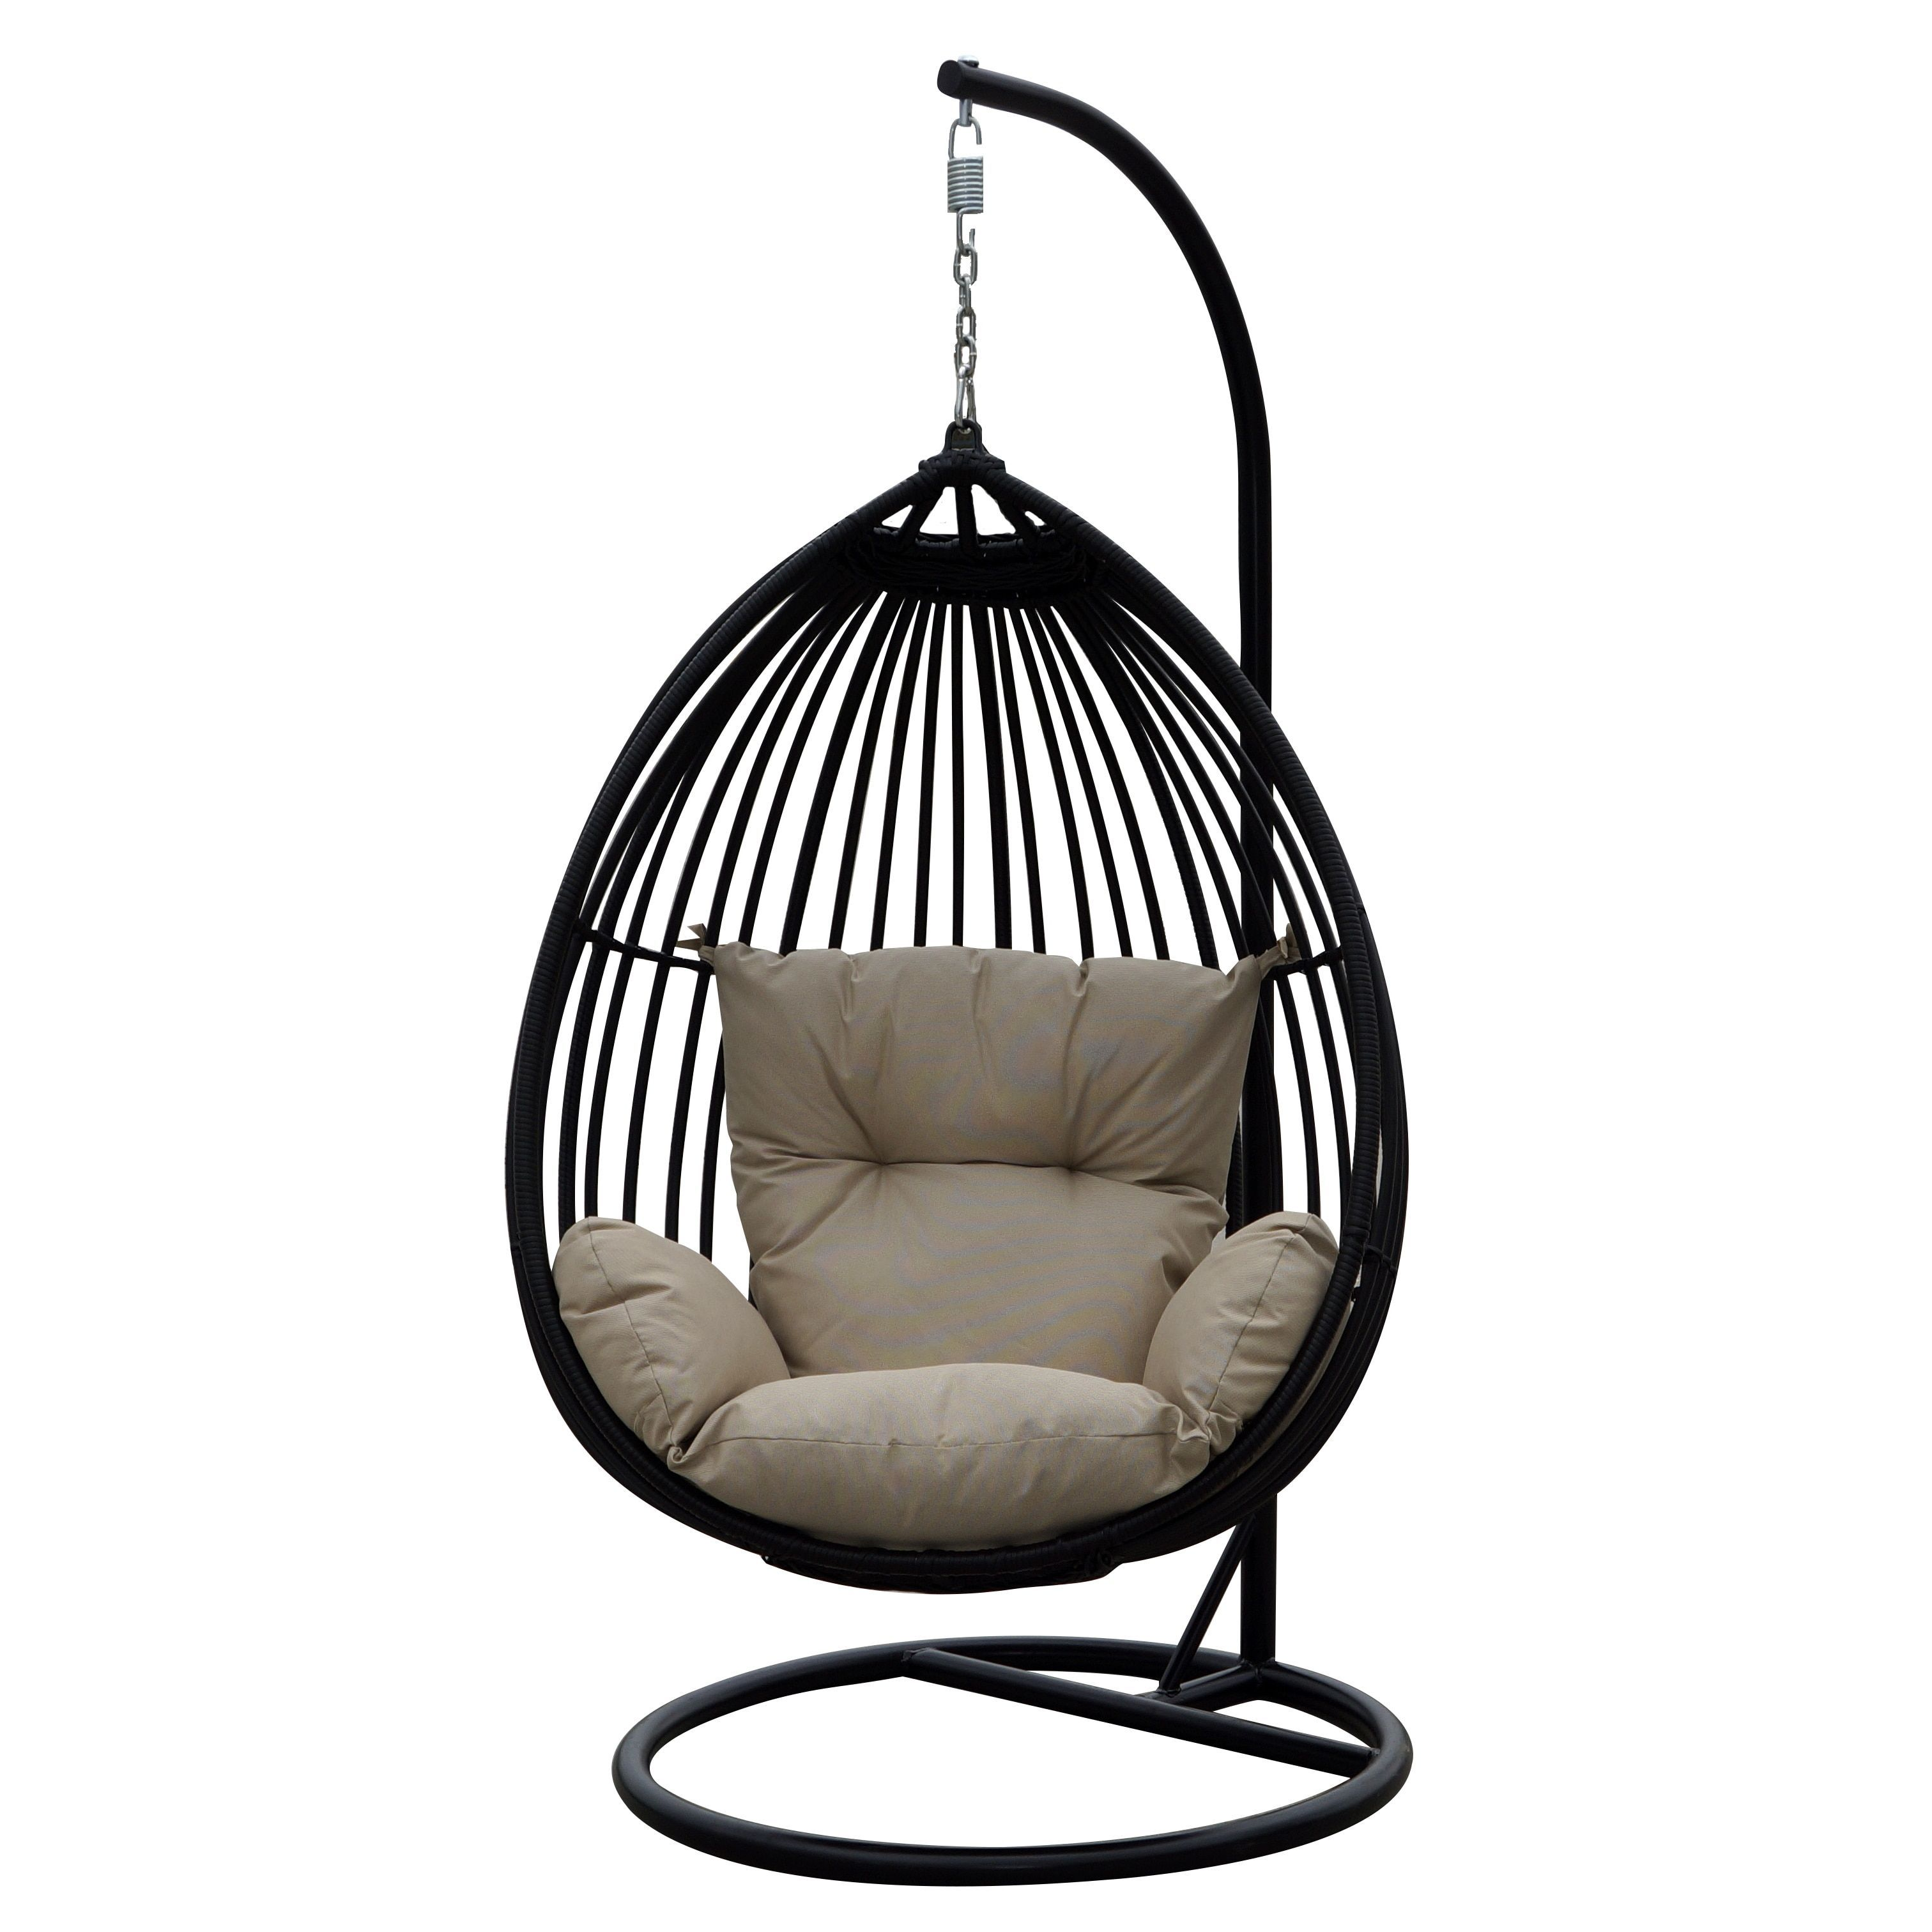 Overstock Com Online Shopping Bedding Furniture Electronics Jewelry Clothing More Swinging Chair Hanging Swing Chair Swing Chair Stand